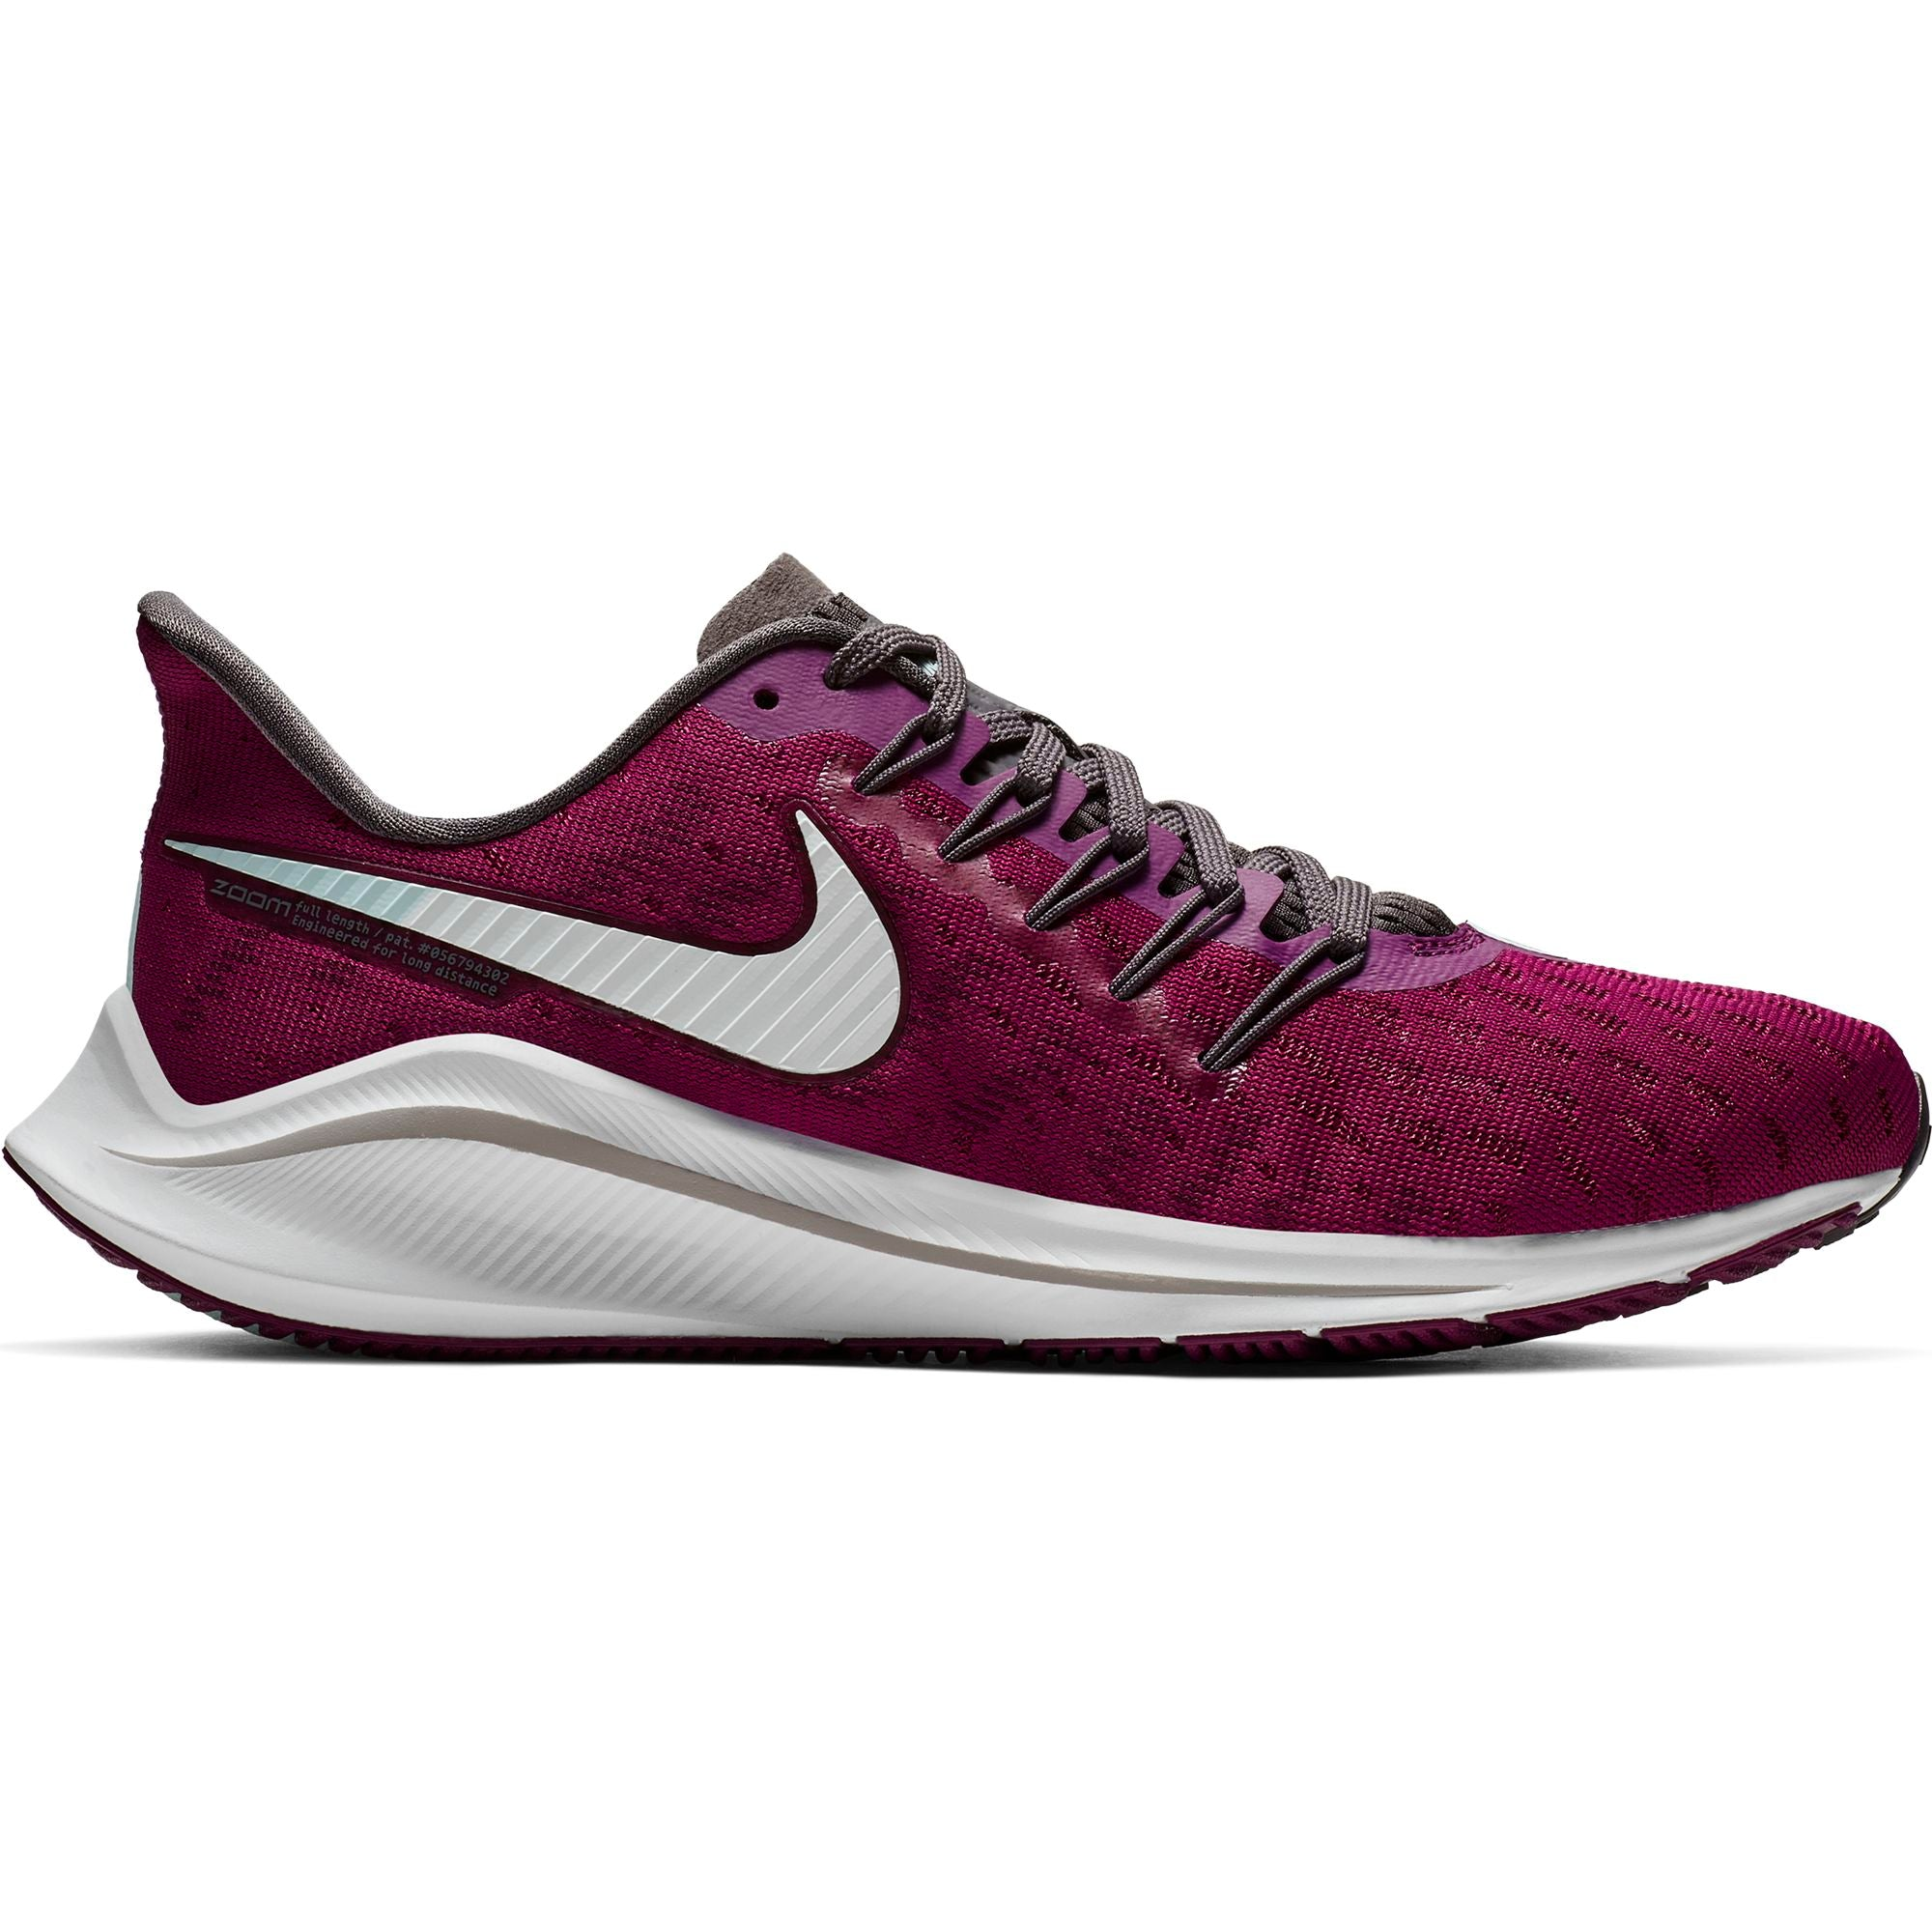 separation shoes 3688b 1fd16 Women s Air Zoom Vomero 14 Running Shoe - True Berry White Thunder Gre –  Gazelle Sports